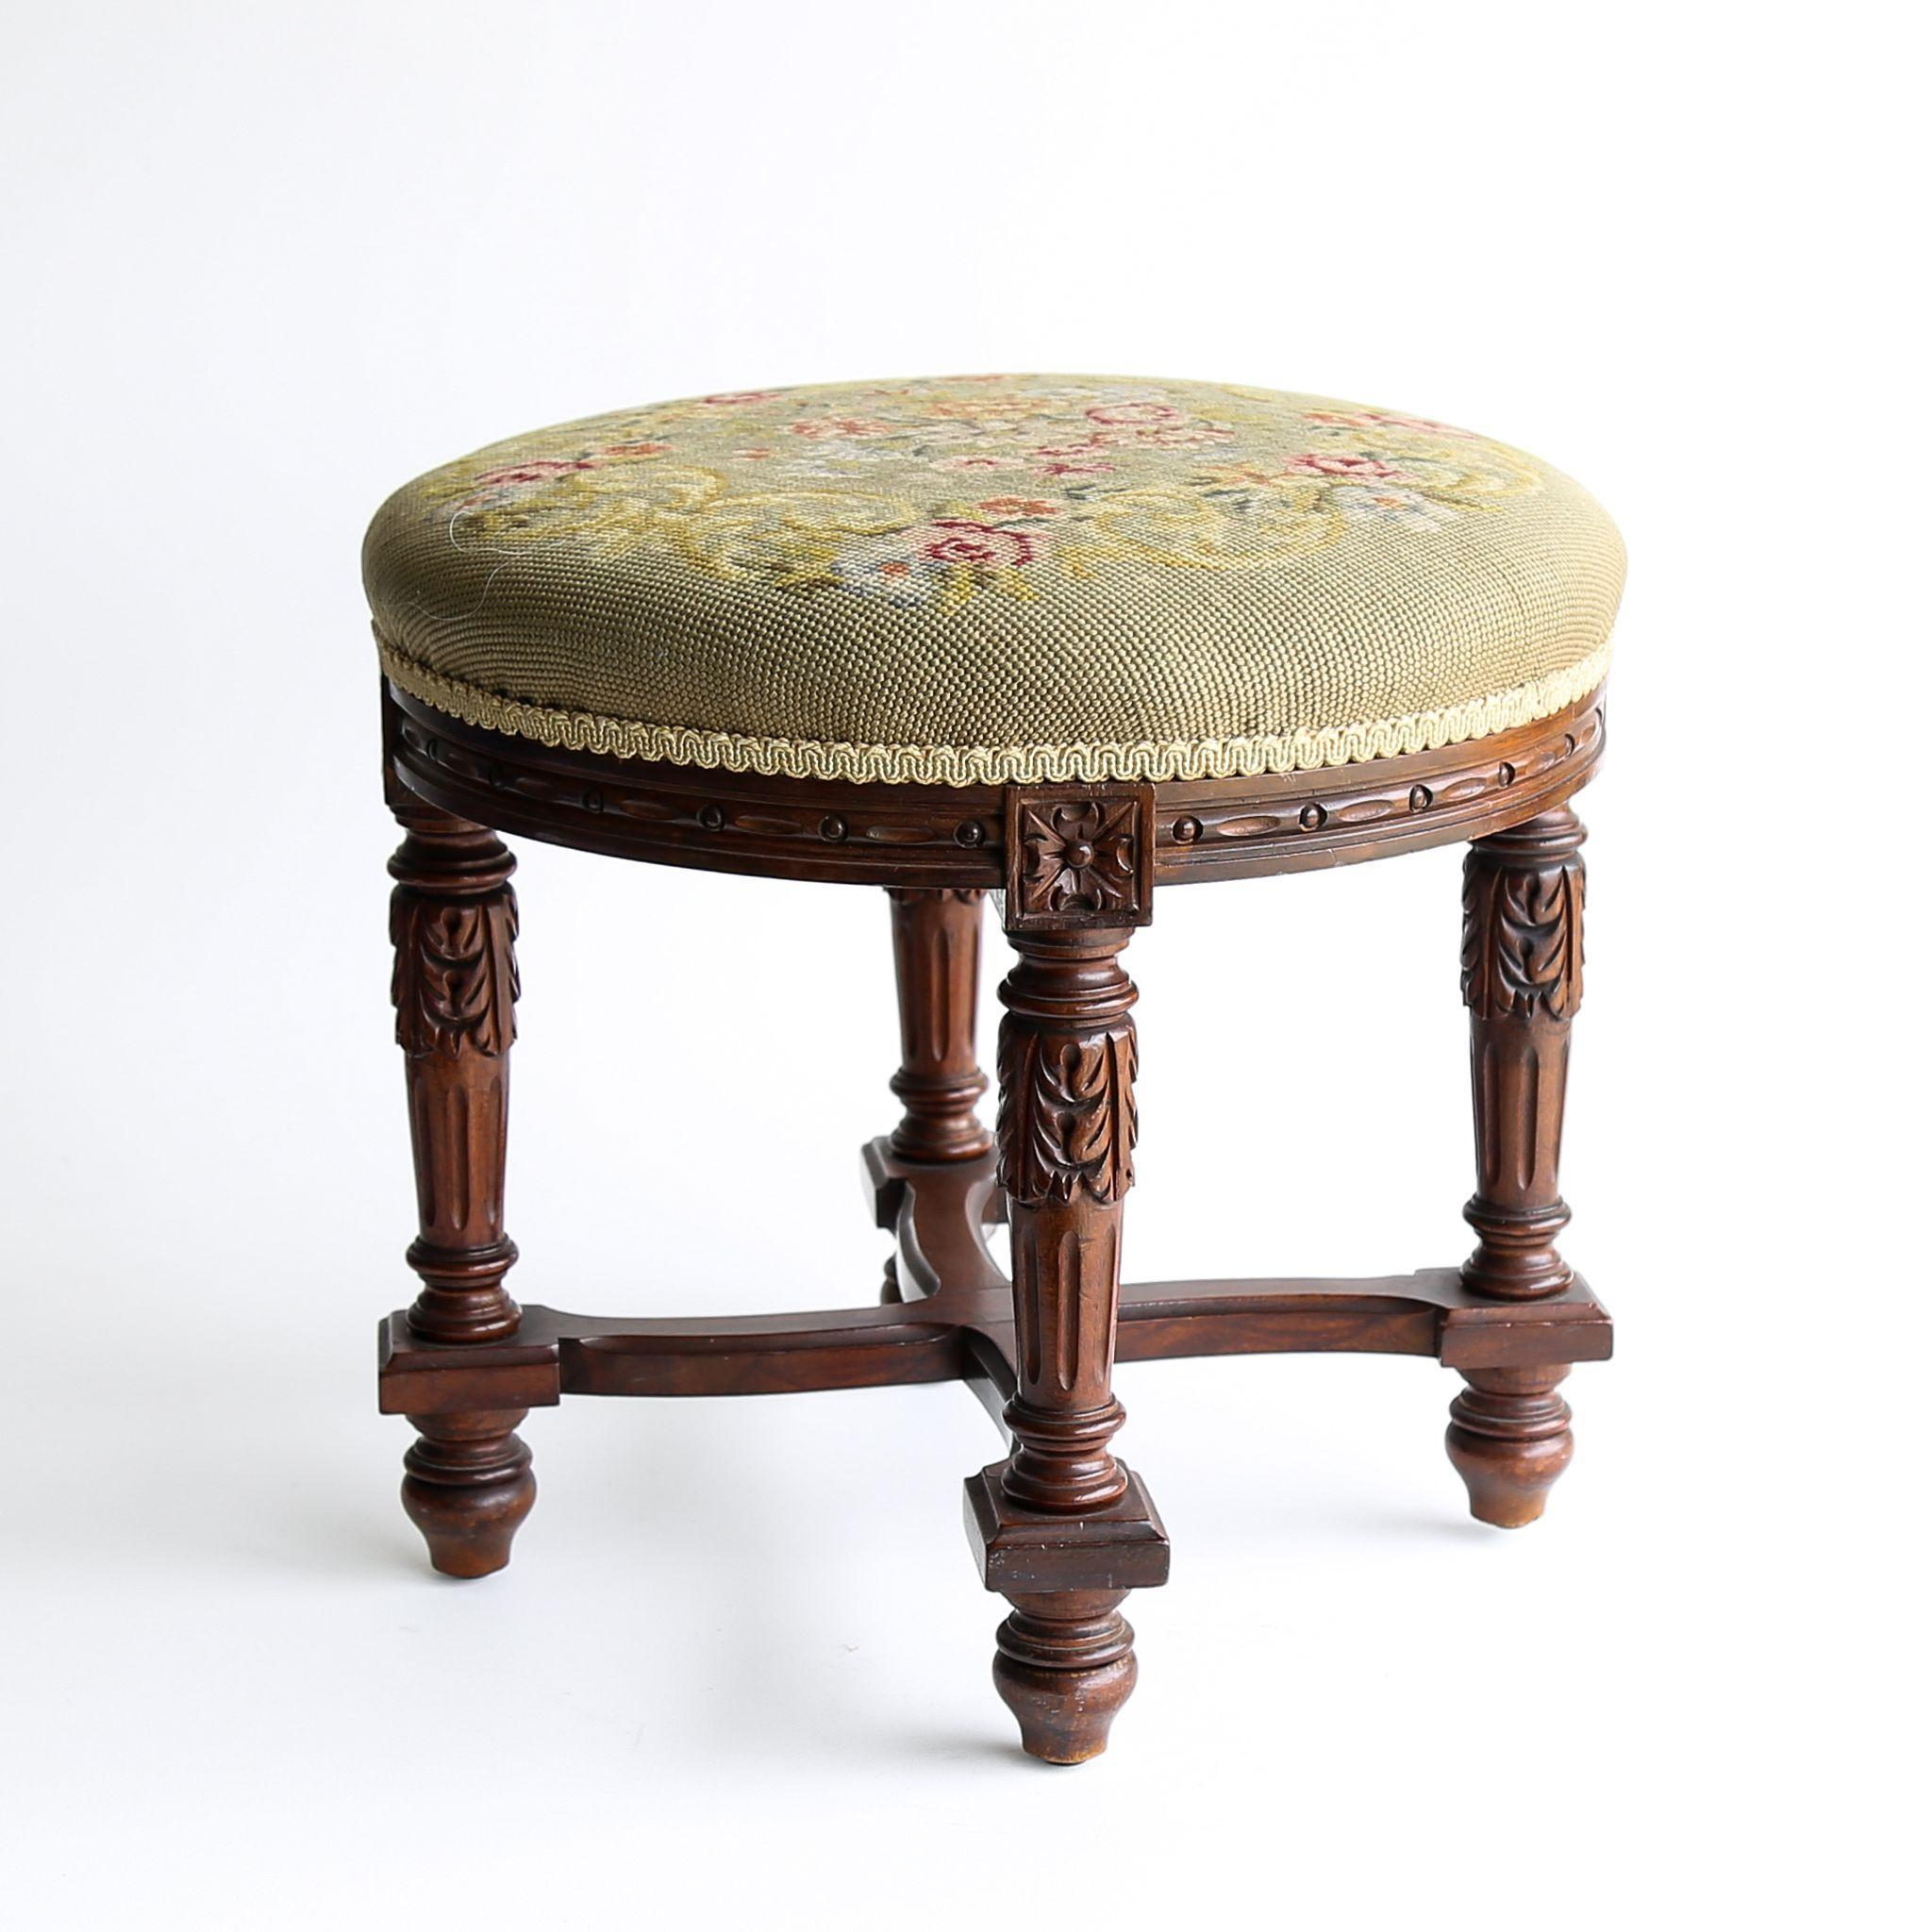 Circa 1910 Antique Carved Needlepoint footstool